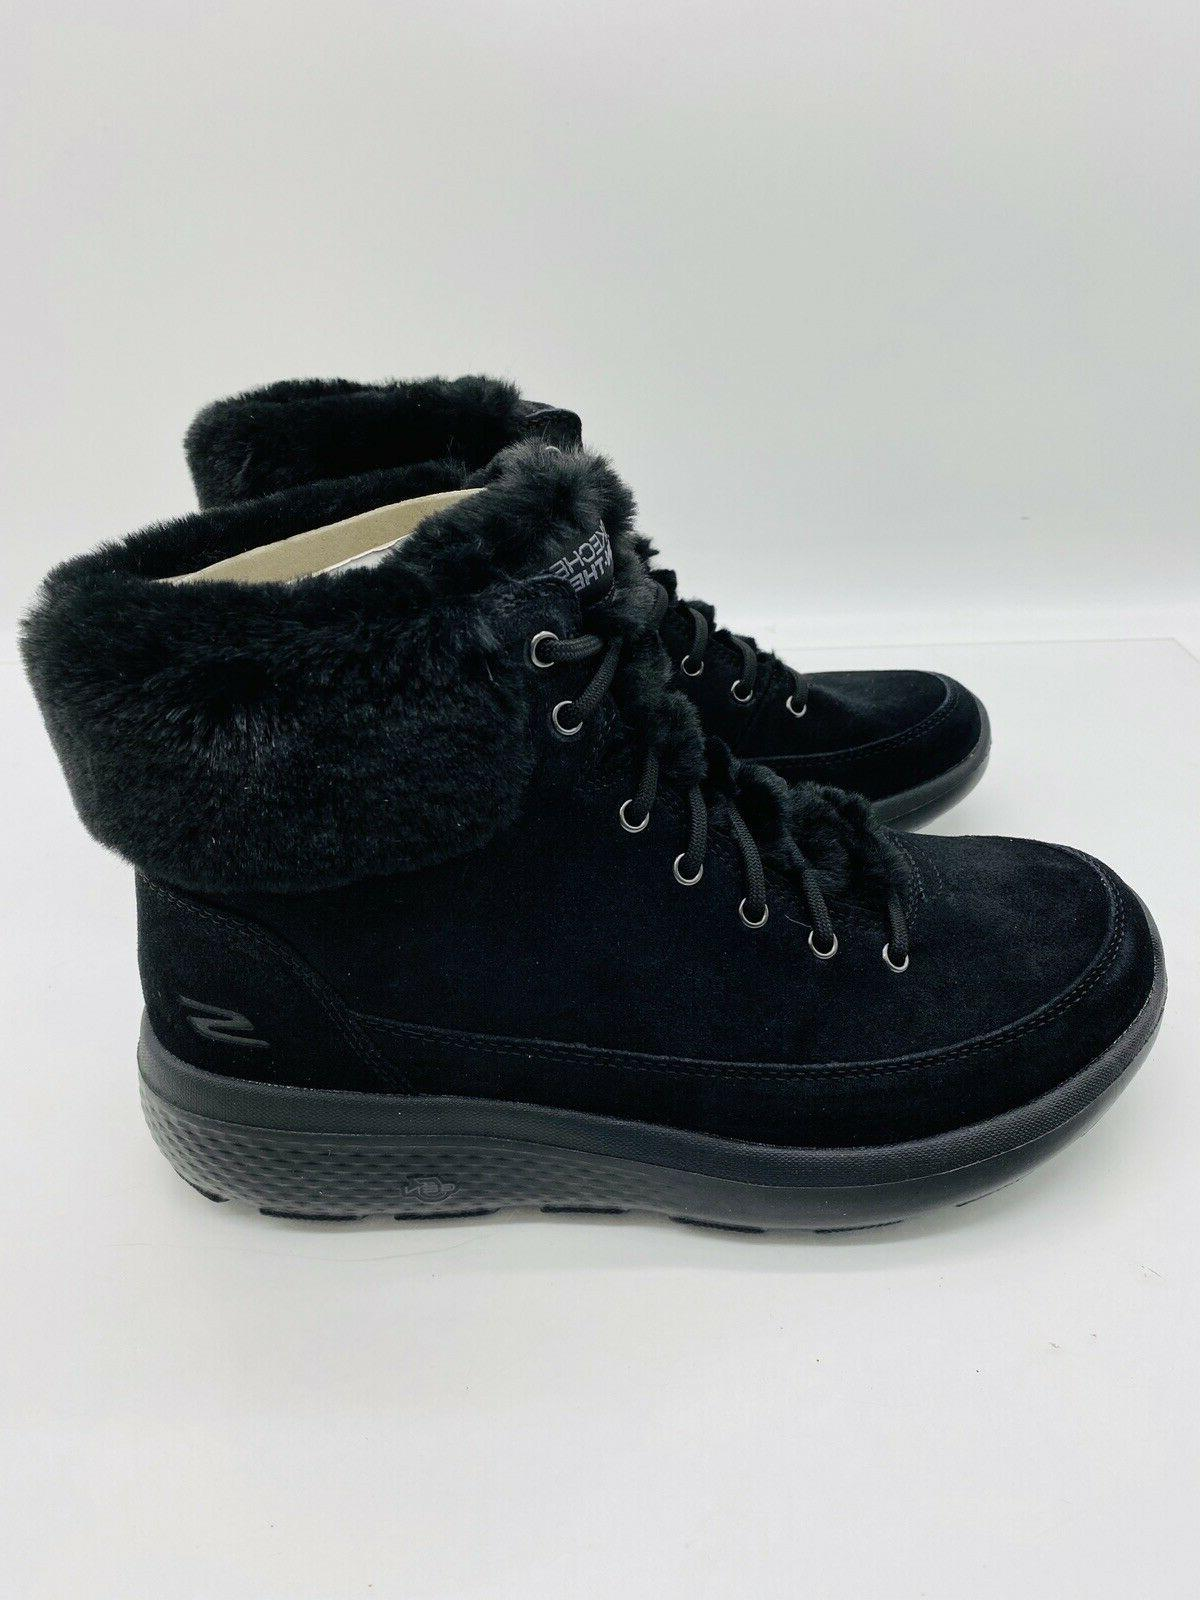 Skechers On-the-Go Women's Chill Boots